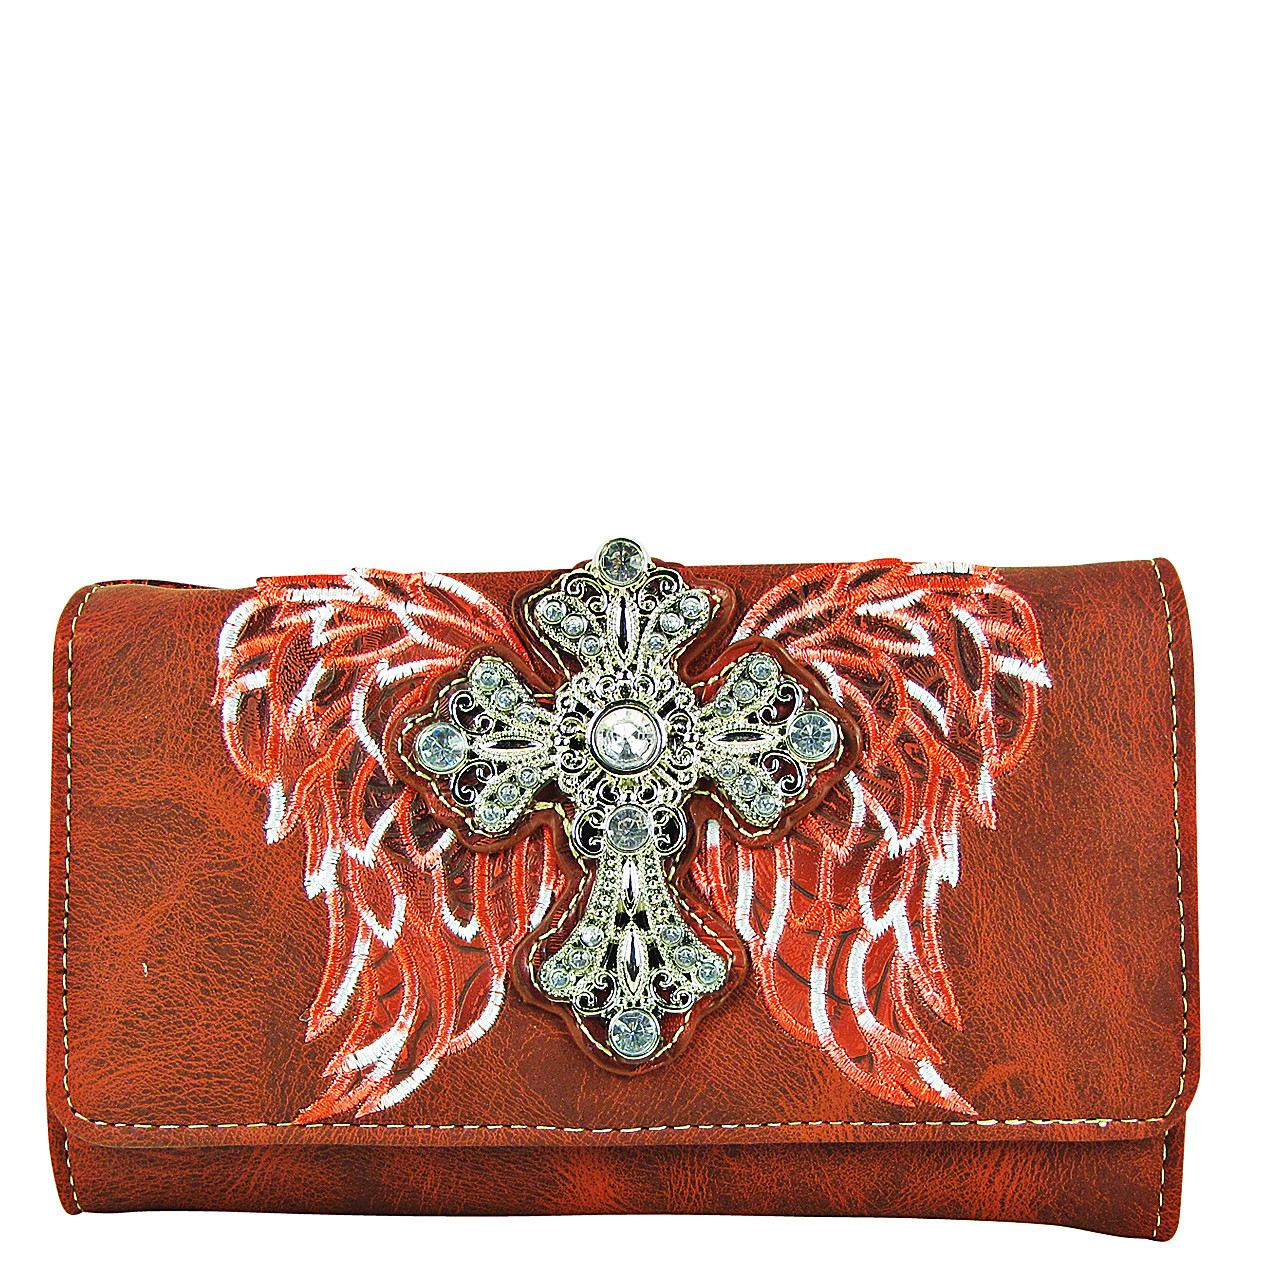 RED WINGS WITH RHINESTONE CROSS LOOK CLUTCH TRIFOLD WALLET CW1-0477RED